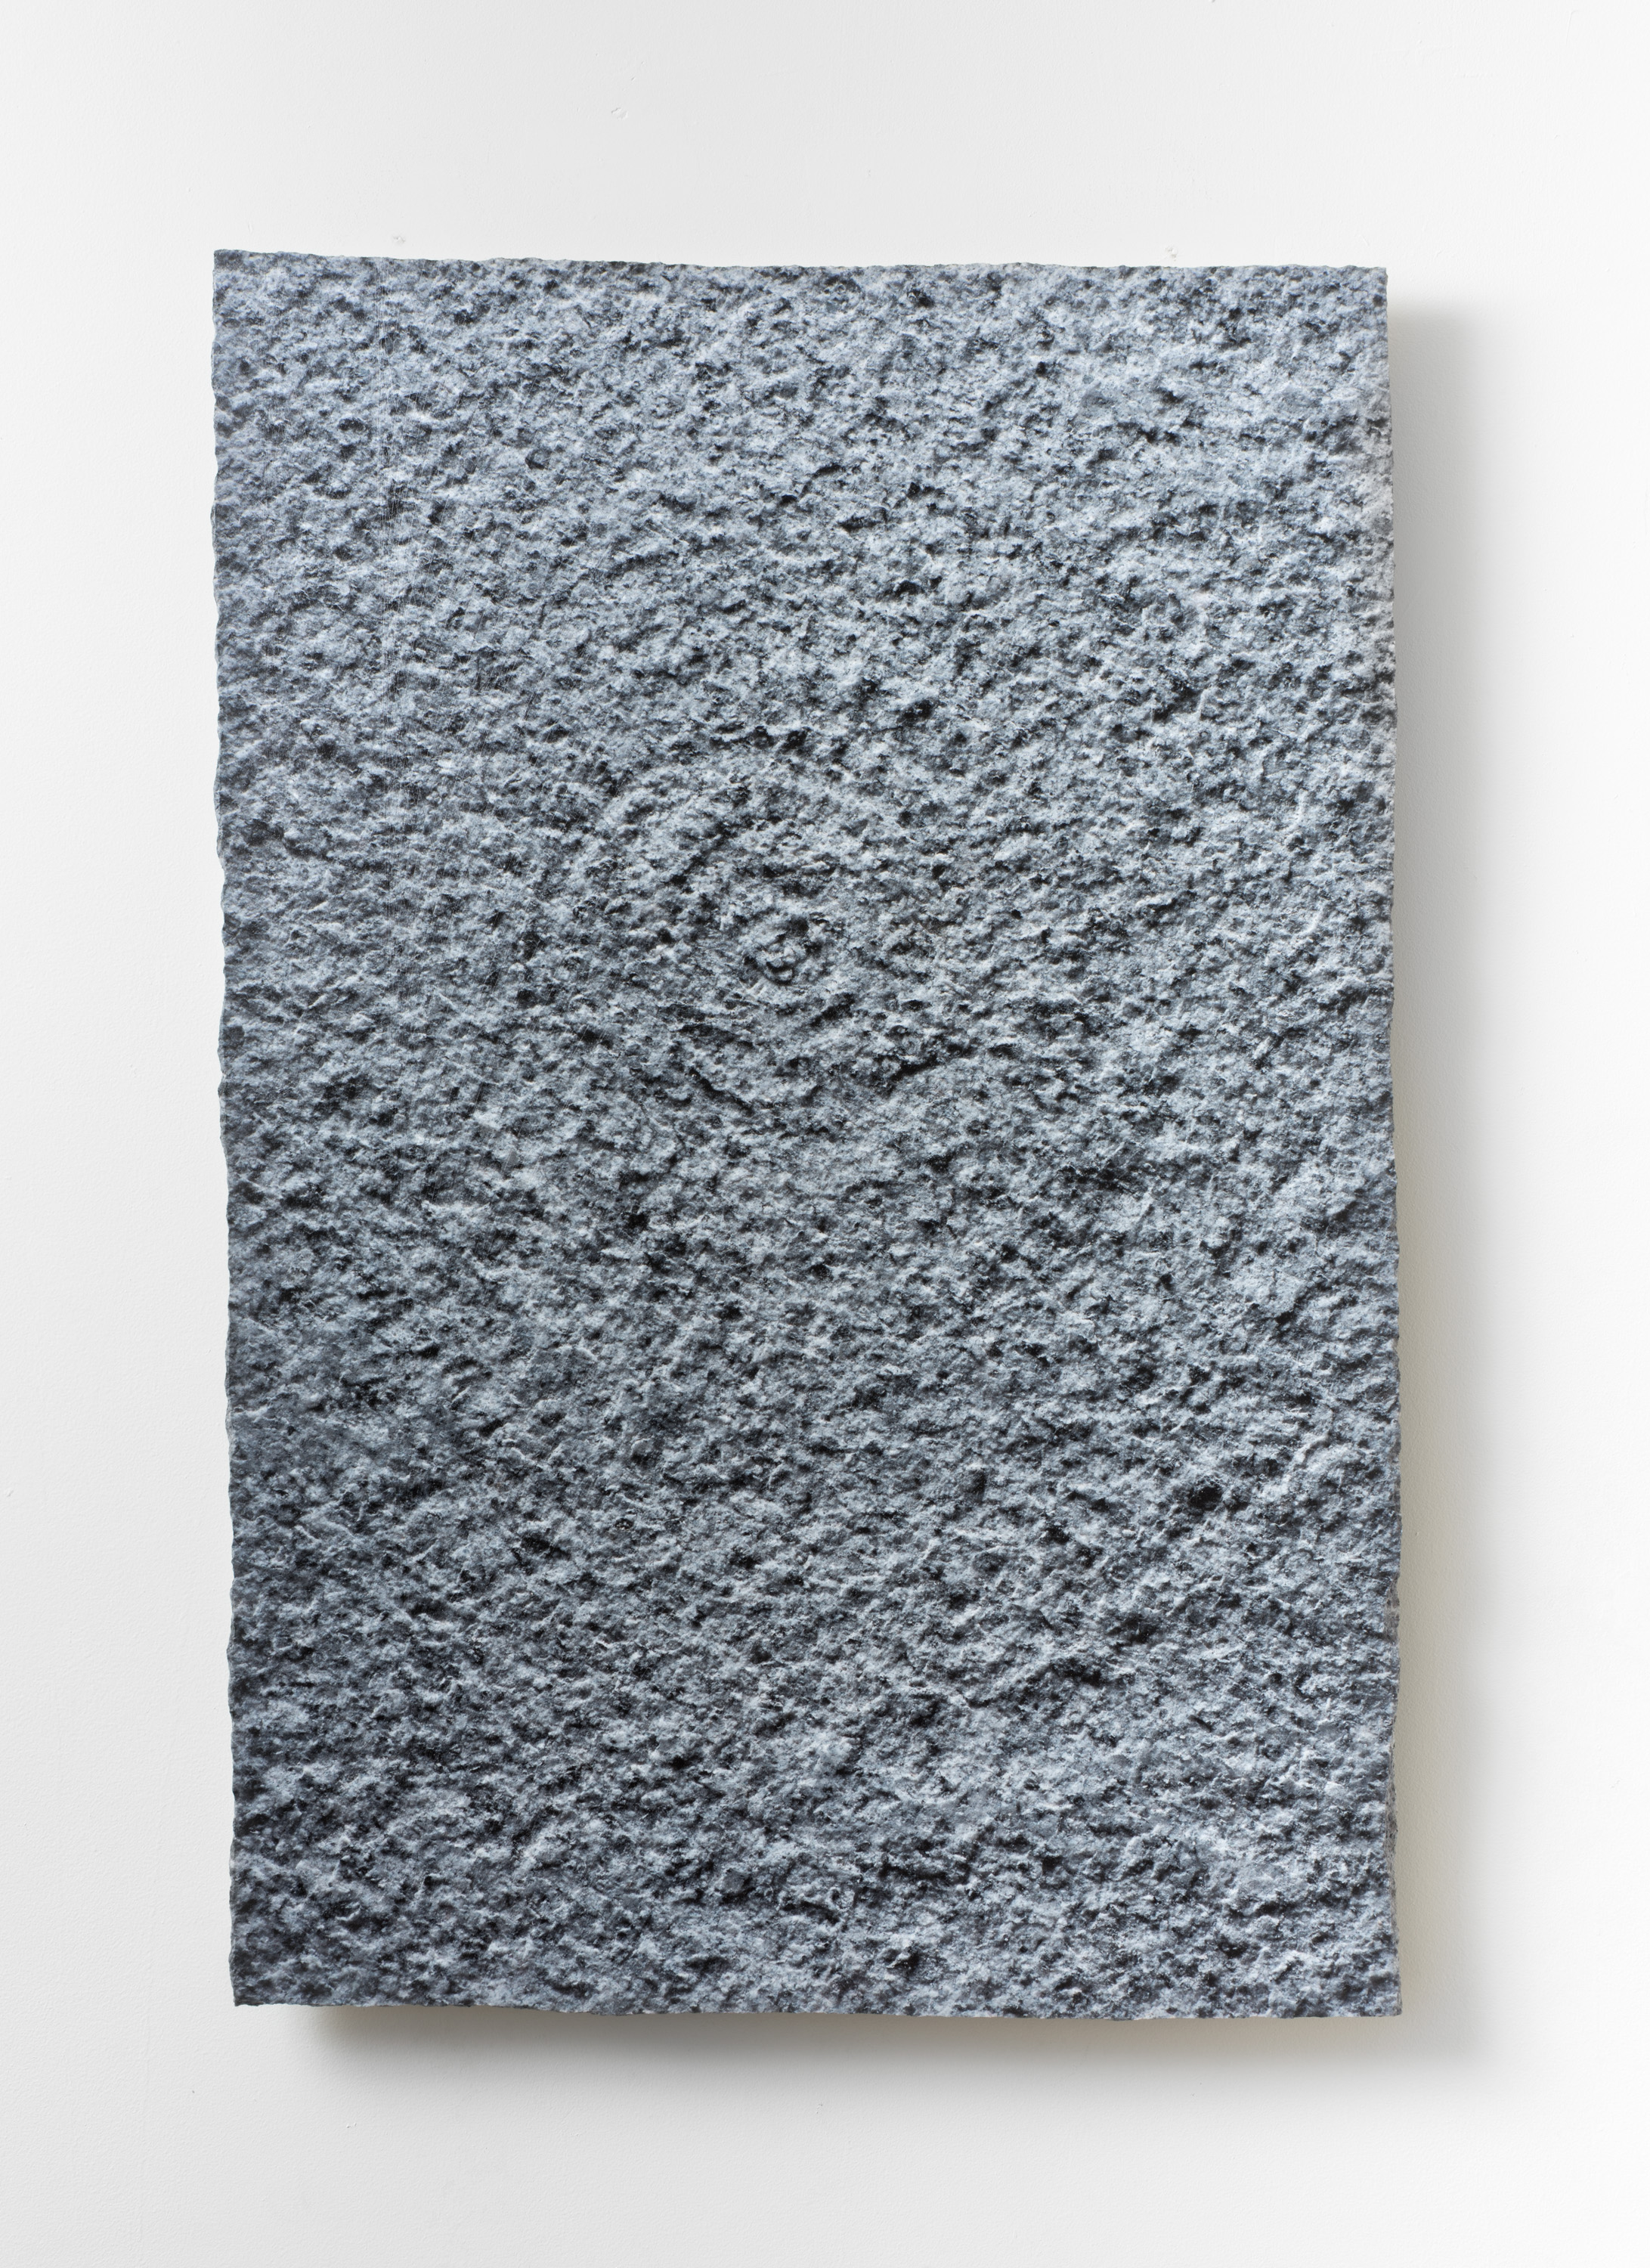 Granite Spiral I,  2019  UV ink on granite with concrete cleats 36x24 Inches